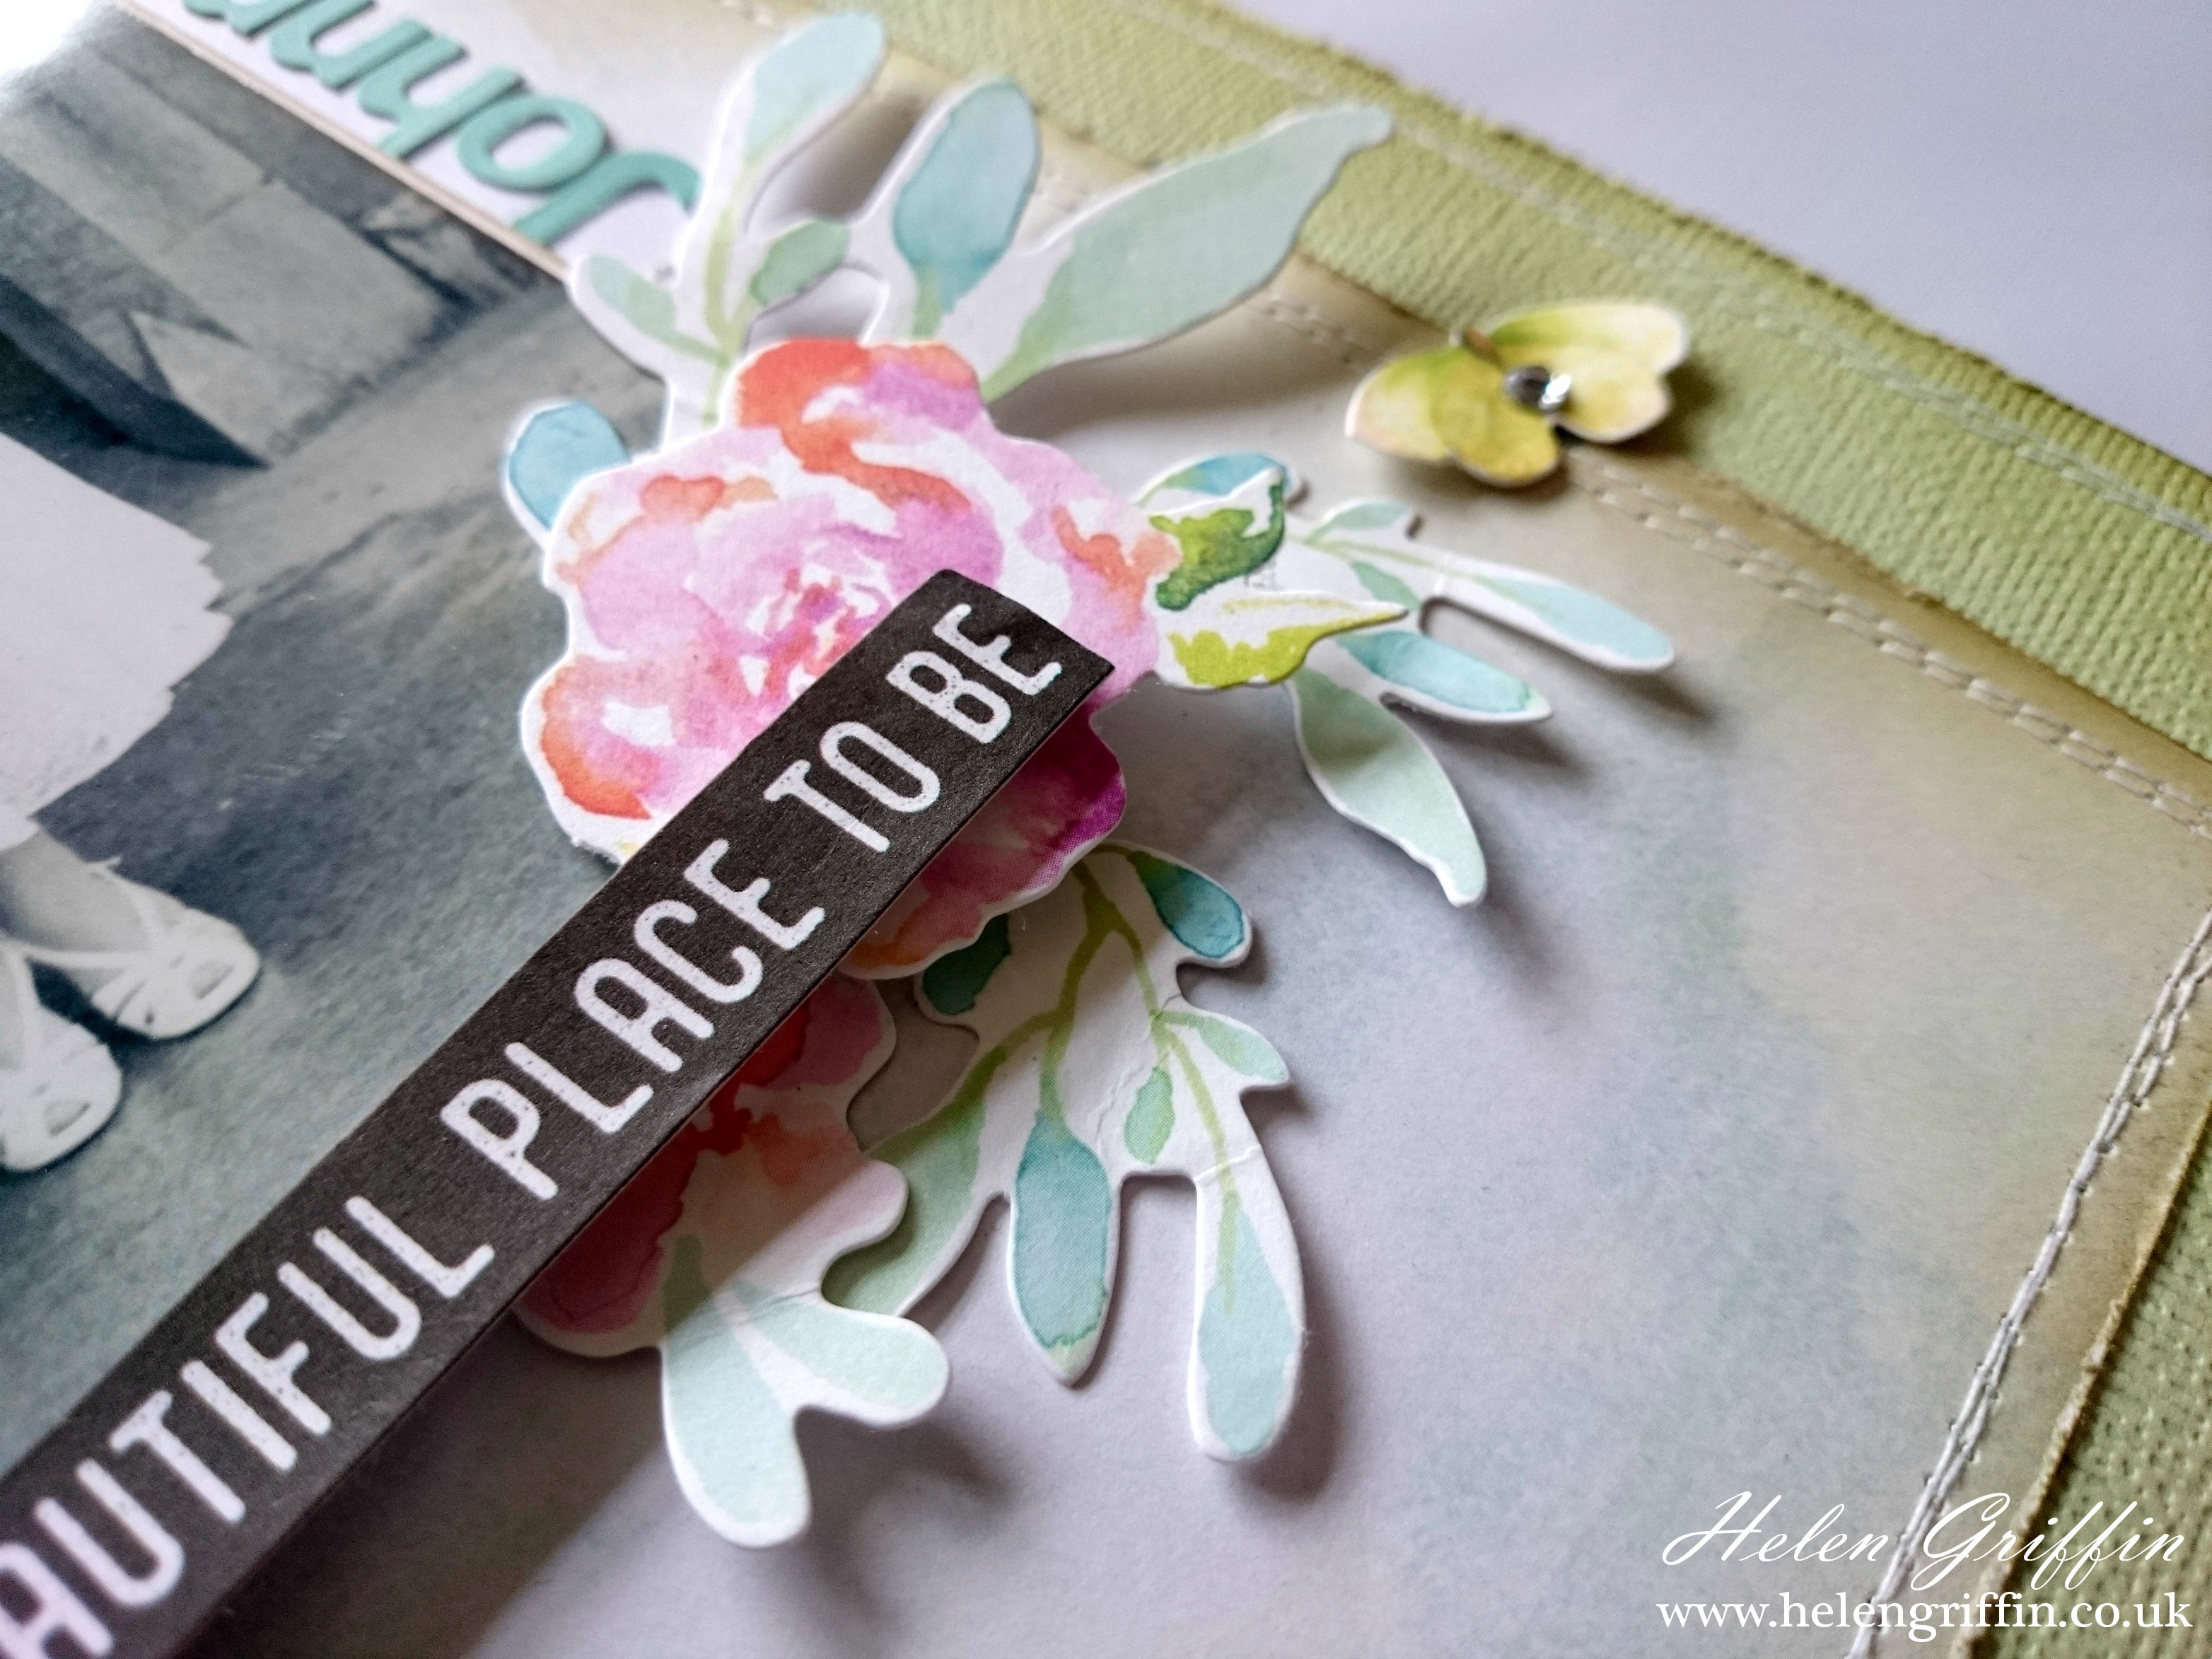 How to scrapbook uk - Vintage Wedding Scrapbook Page Without Heritage Colours Helen Griffin